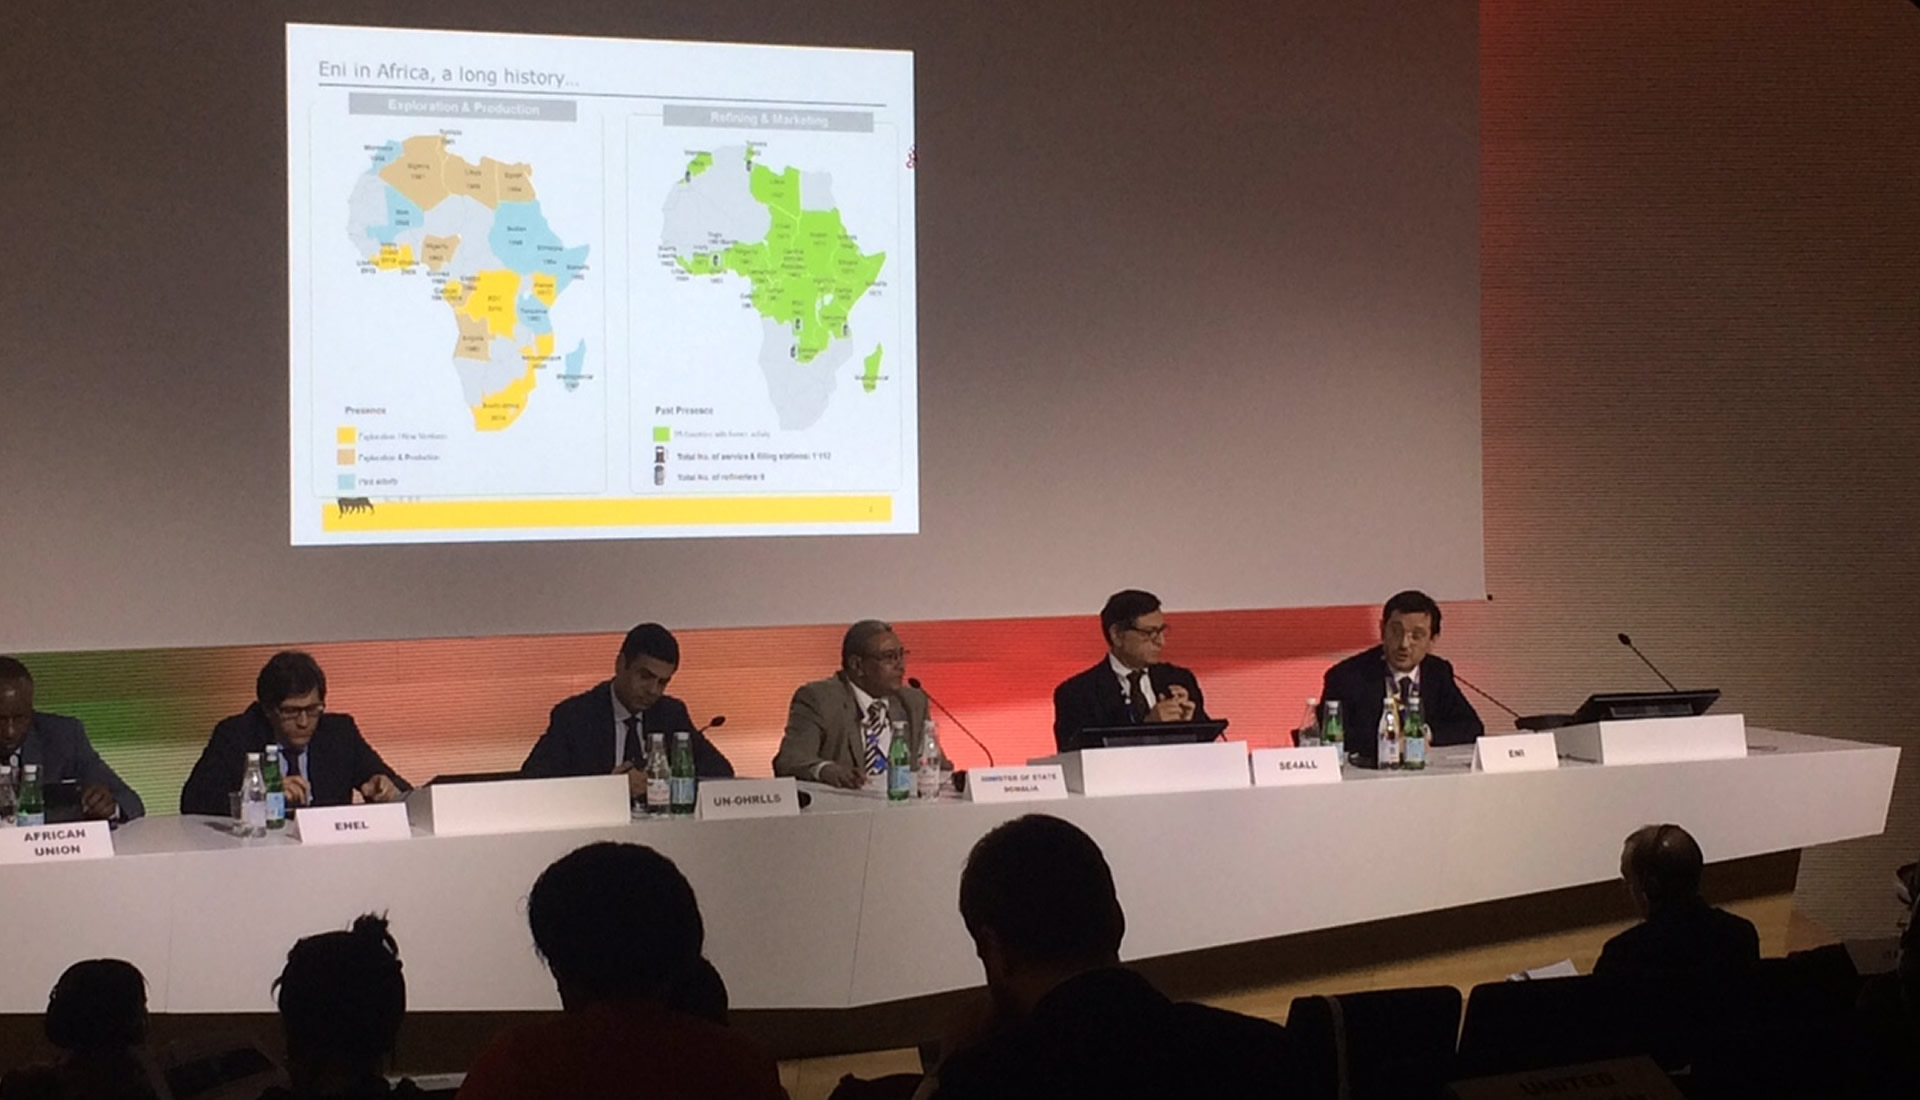 eni in africa 2